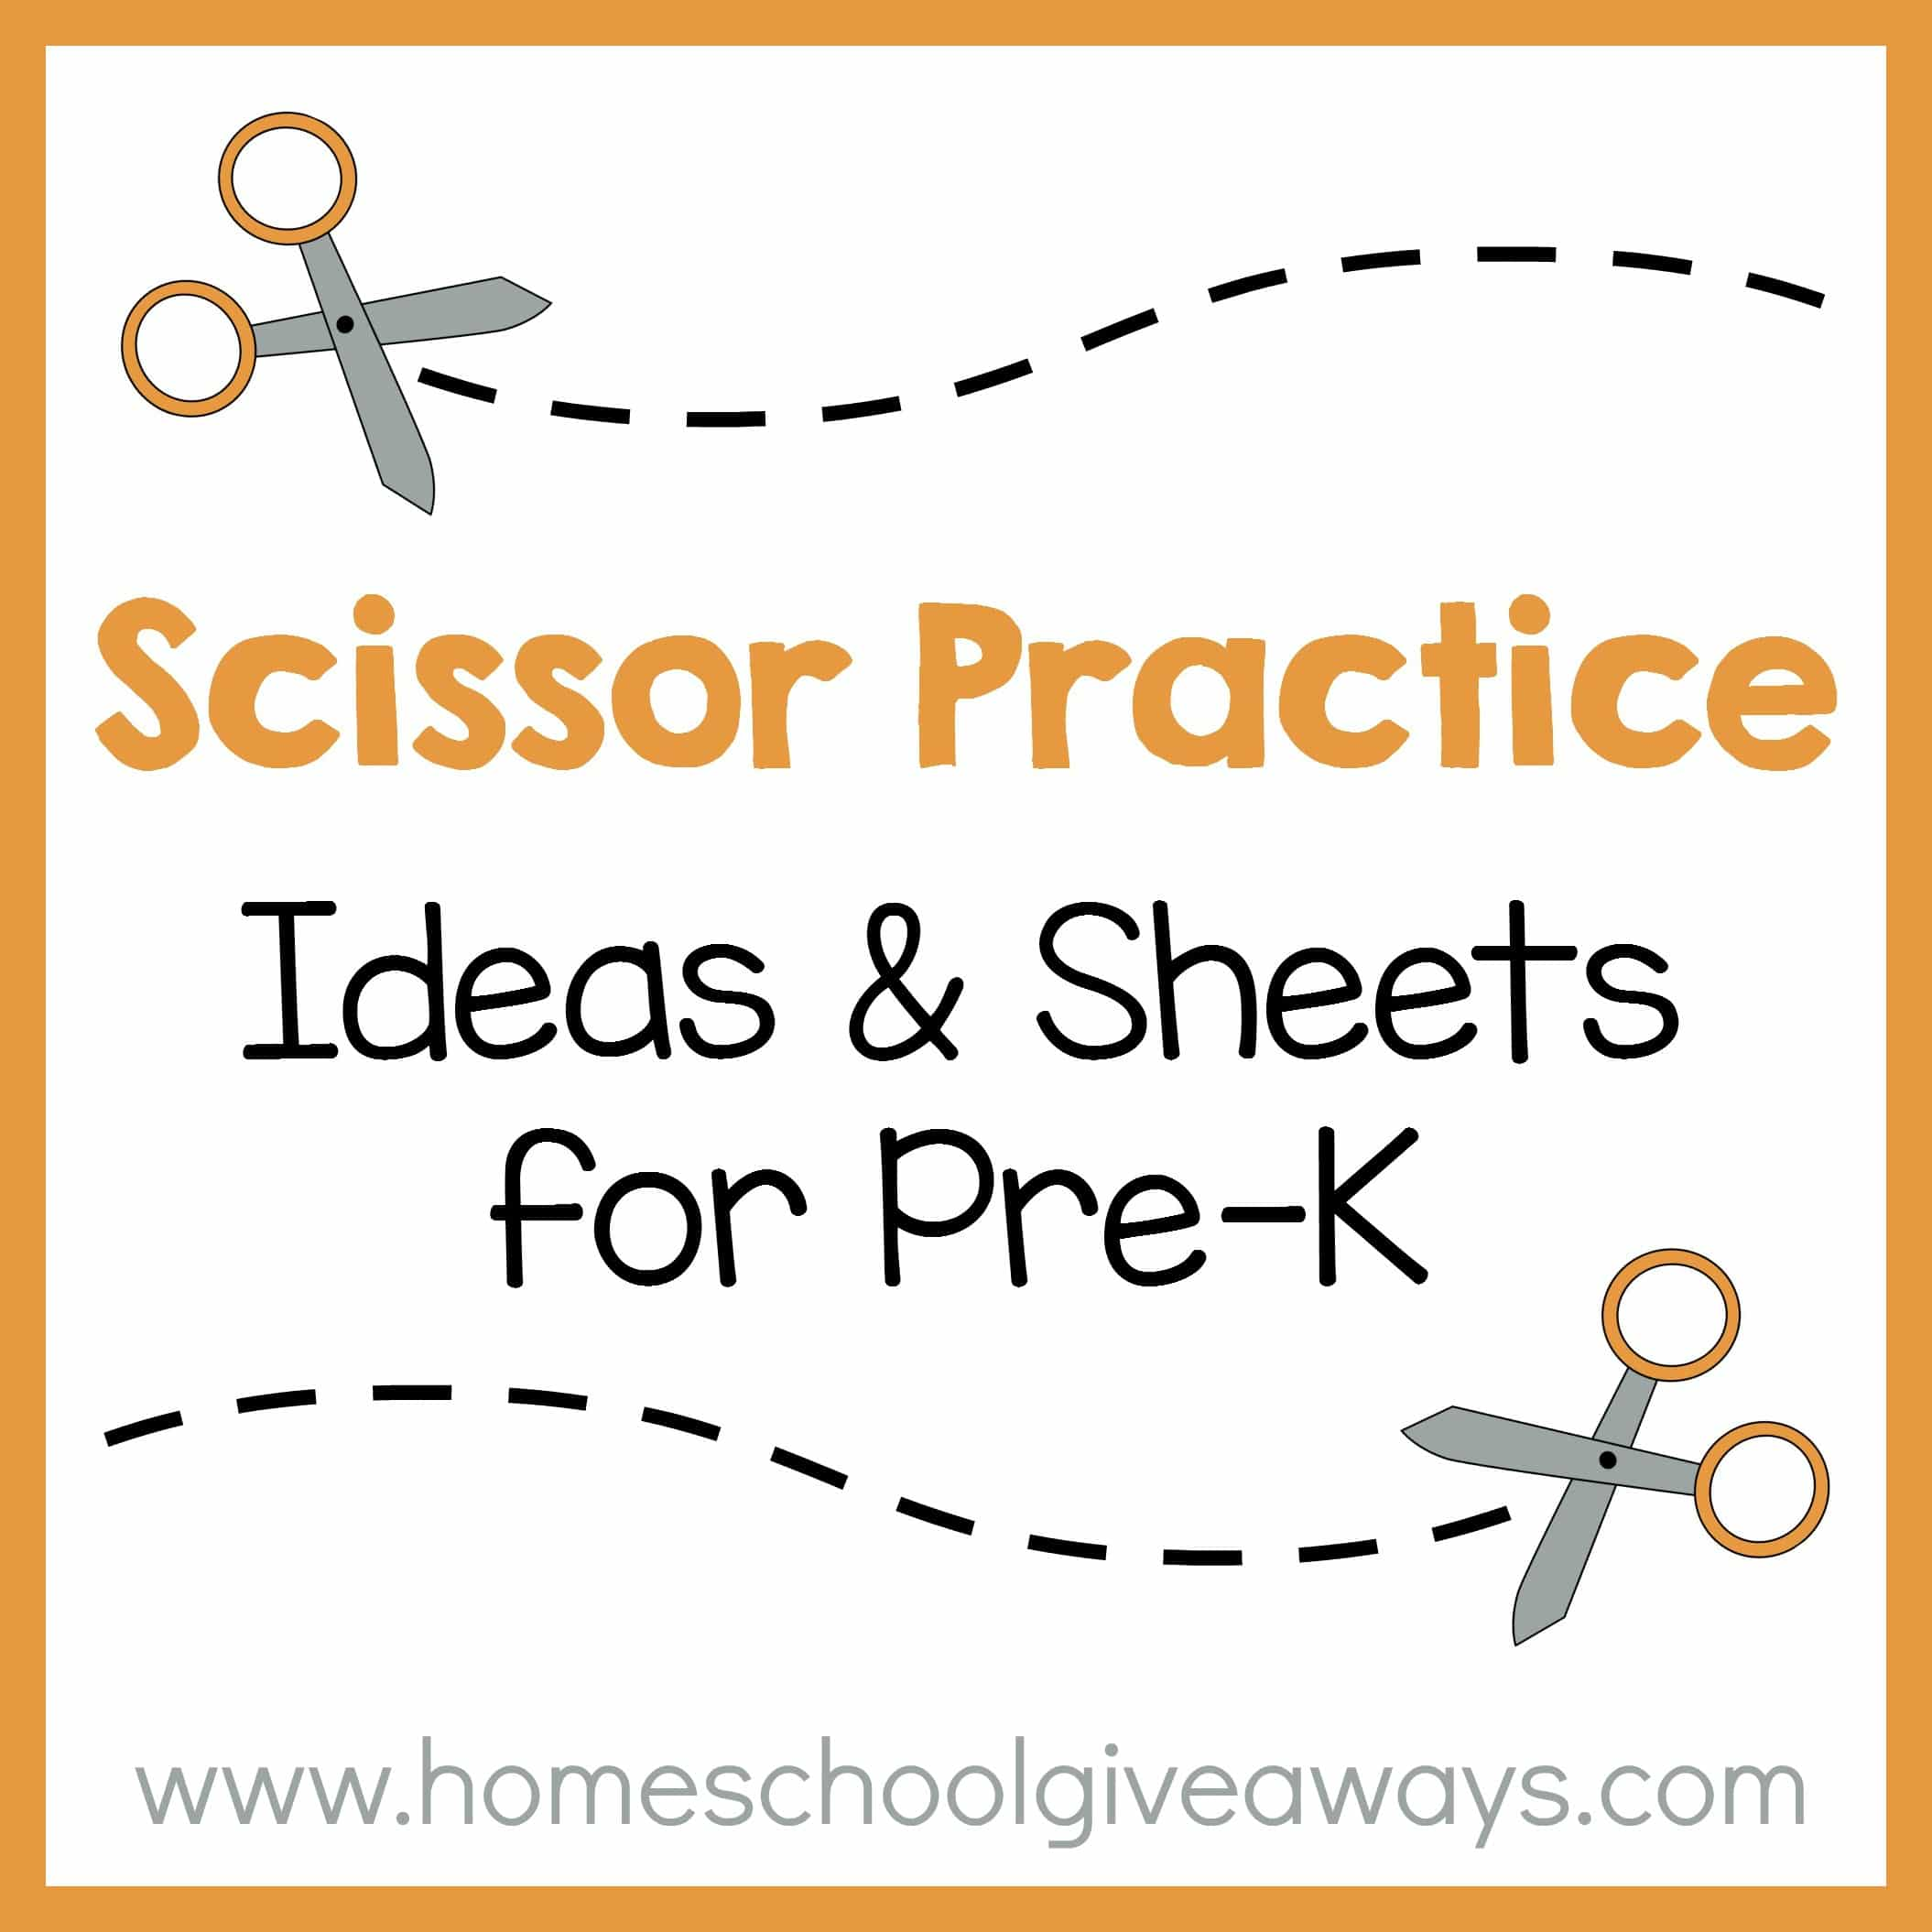 Scissor Practice Ideas And Sheets For Pre K